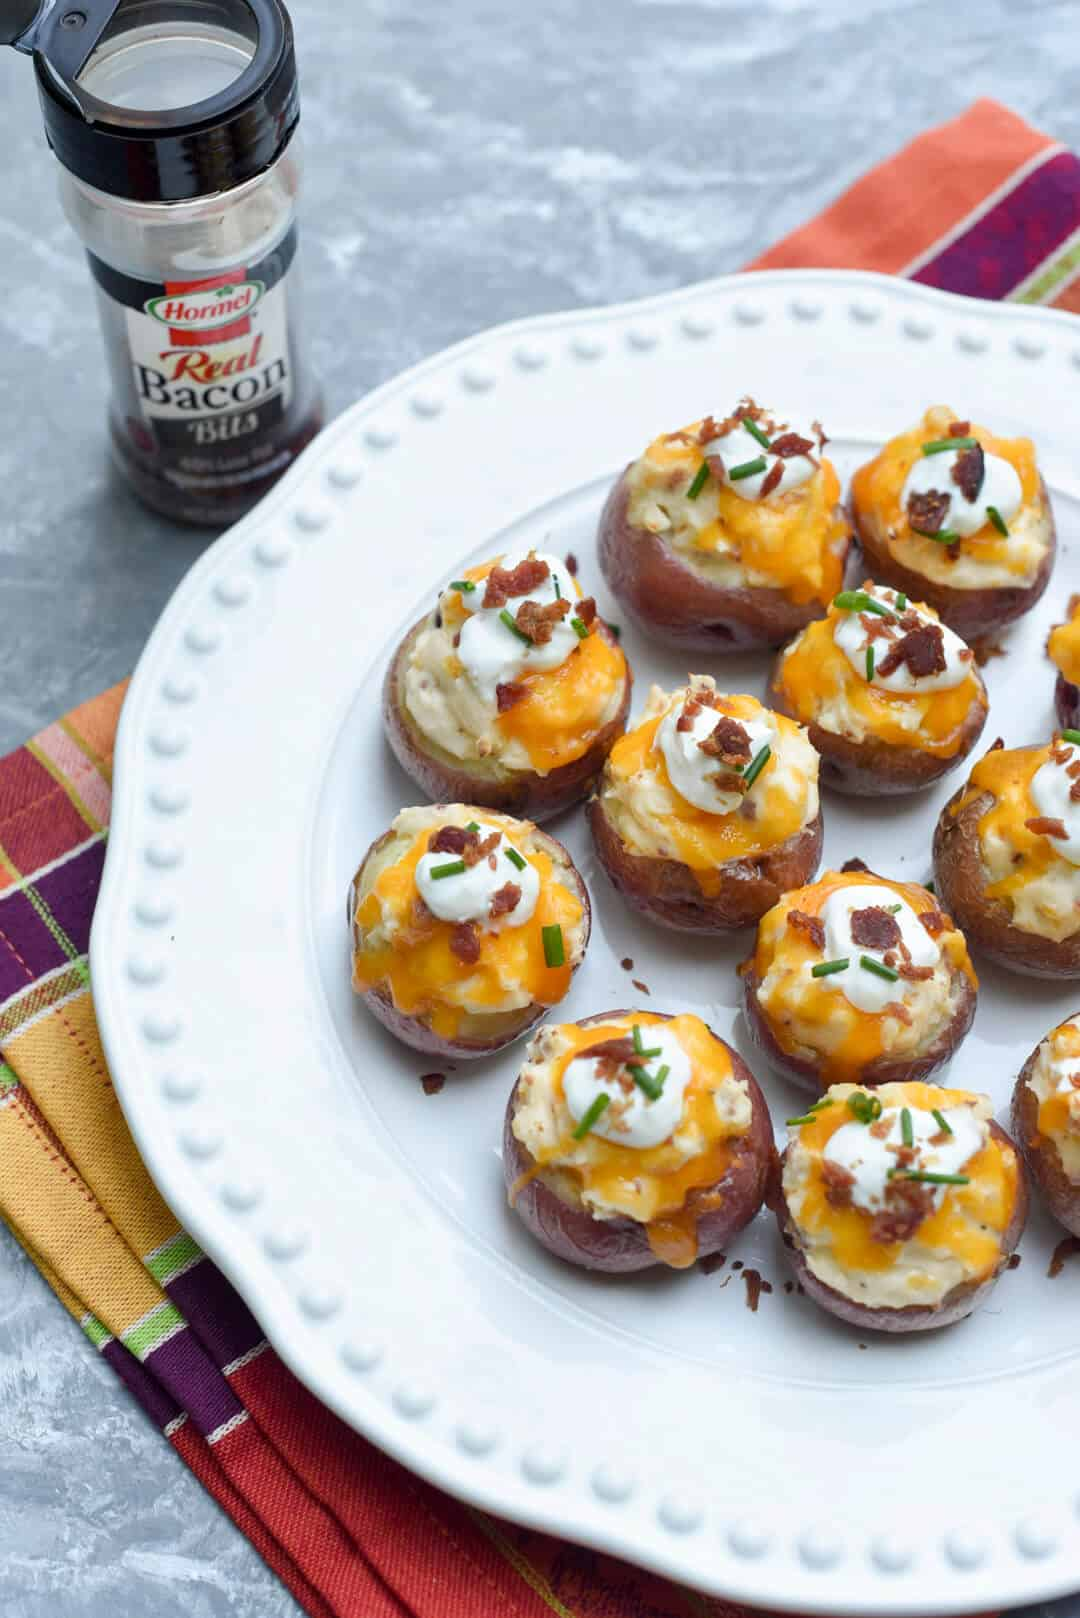 These Fully Loaded Twice Baked Potato Bites are stuffed with a creamy, cheesy, bacon-studded filling and garnished with sour cream, chives and more bacon!